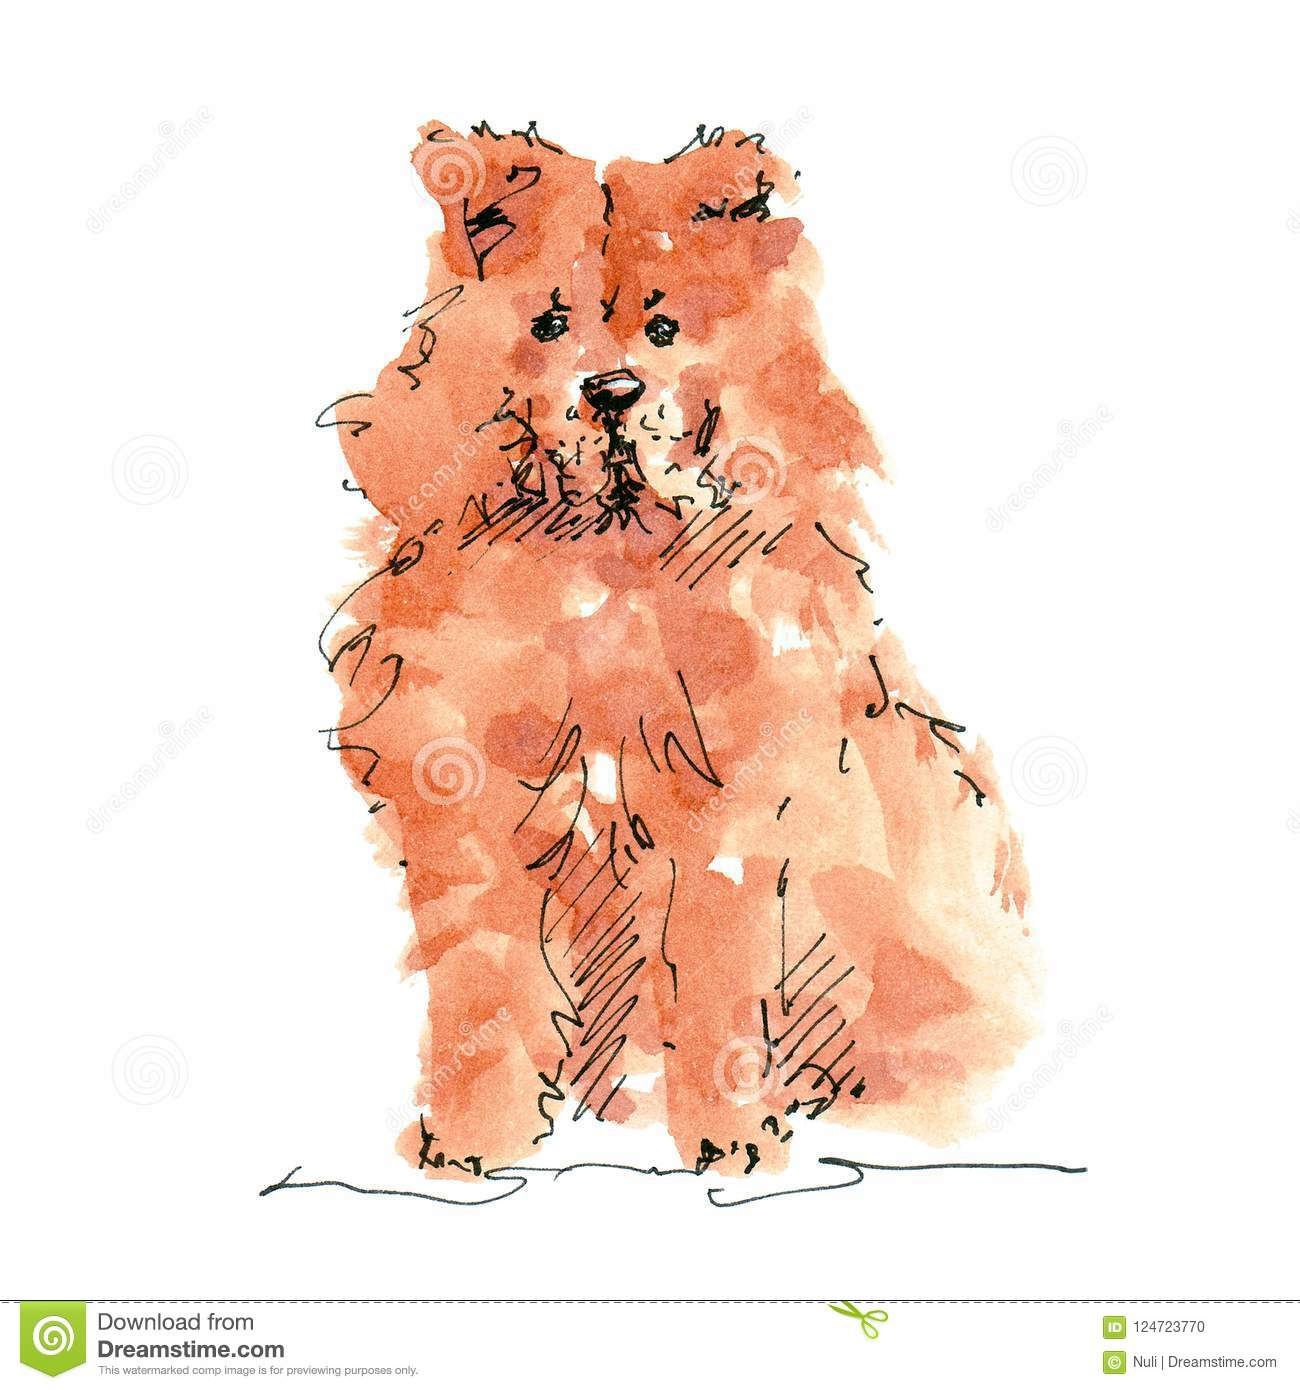 Watercolor Illustration Of Chow Chow Dog Drawing Isolated On White